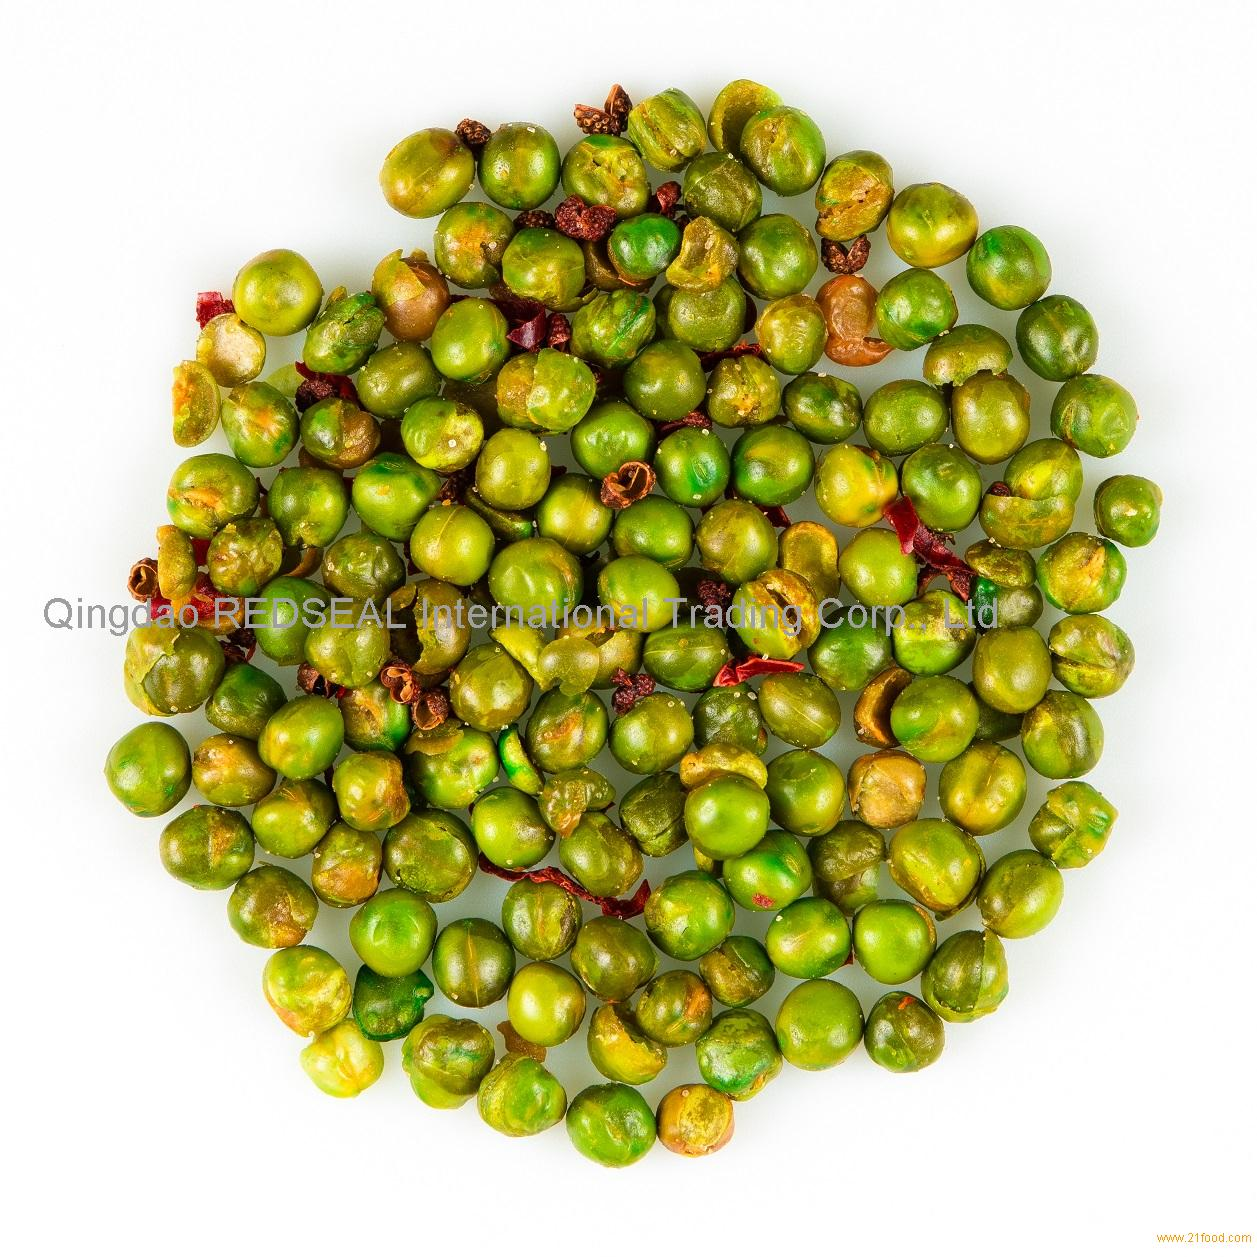 Hot&Spicy Green Pea